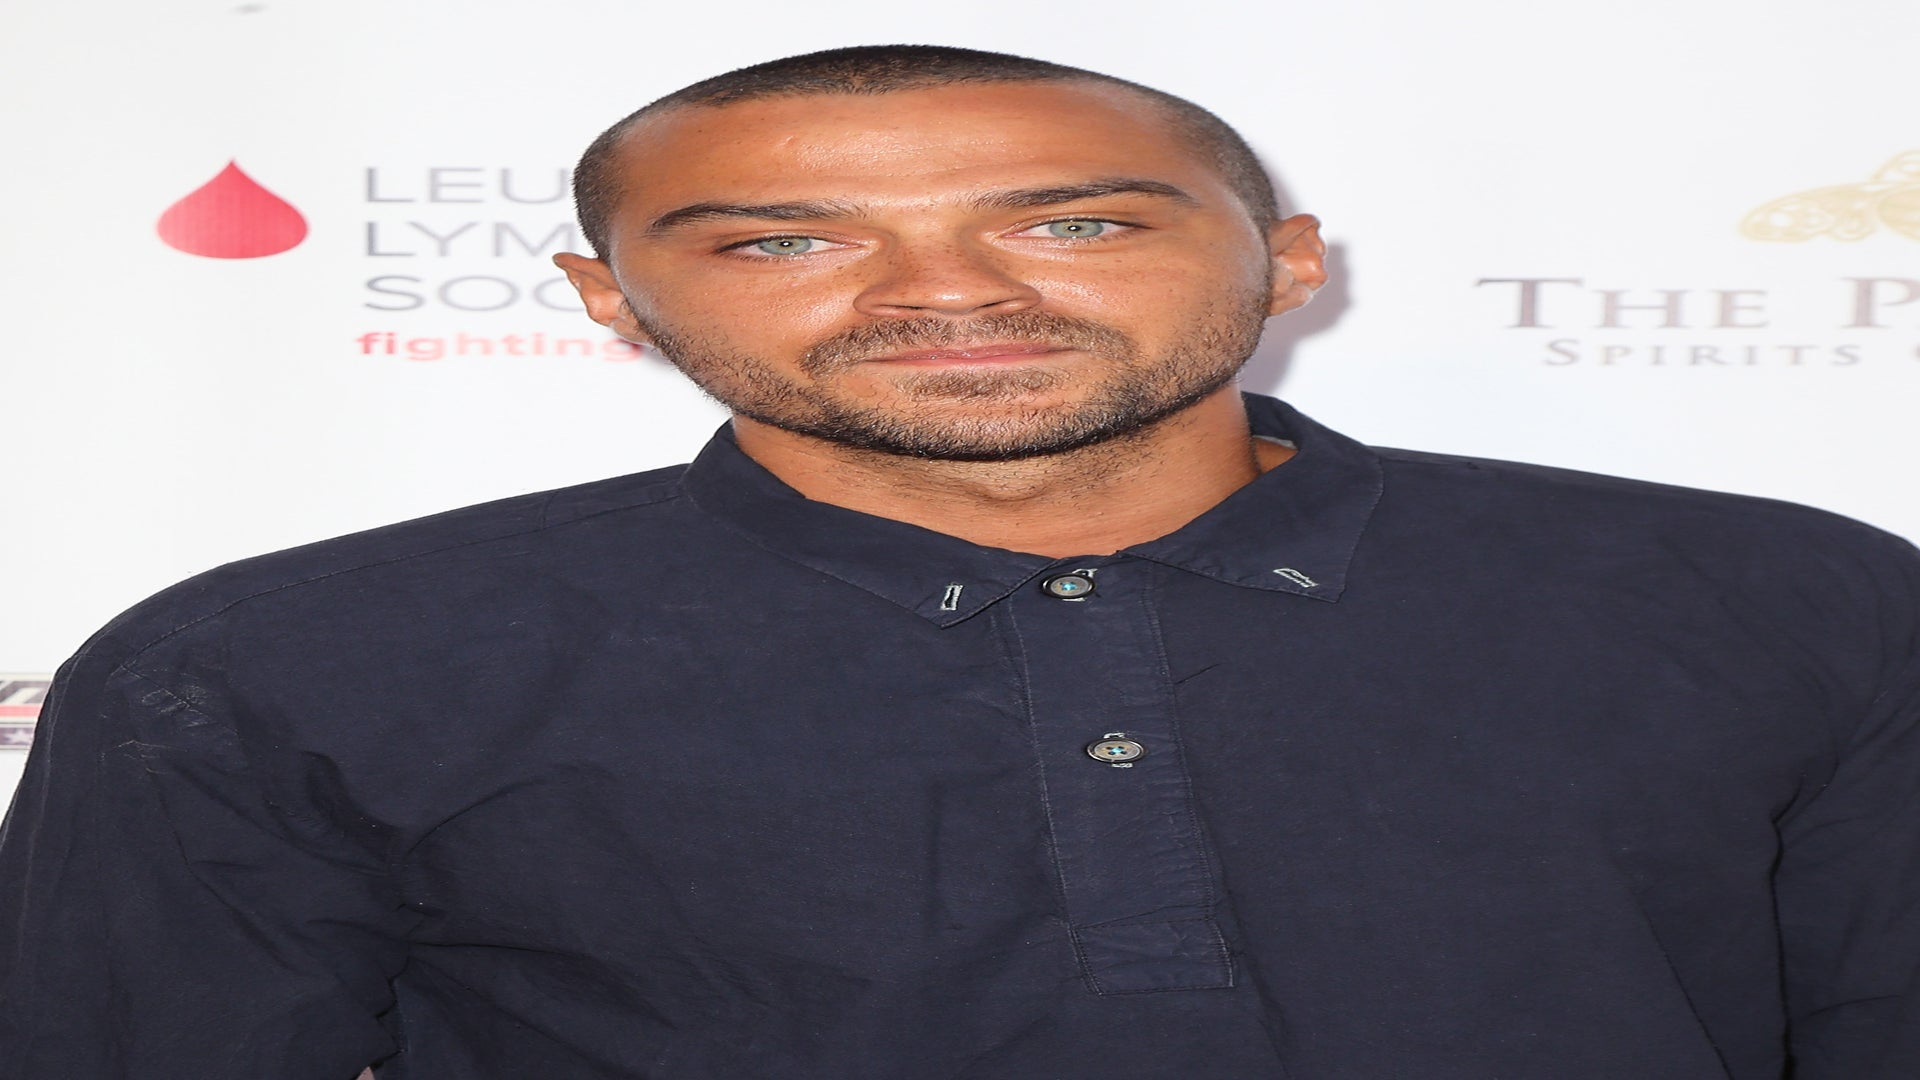 Jesse Williams Takes Us Inside 'Ferguson October' Weekend of Protests